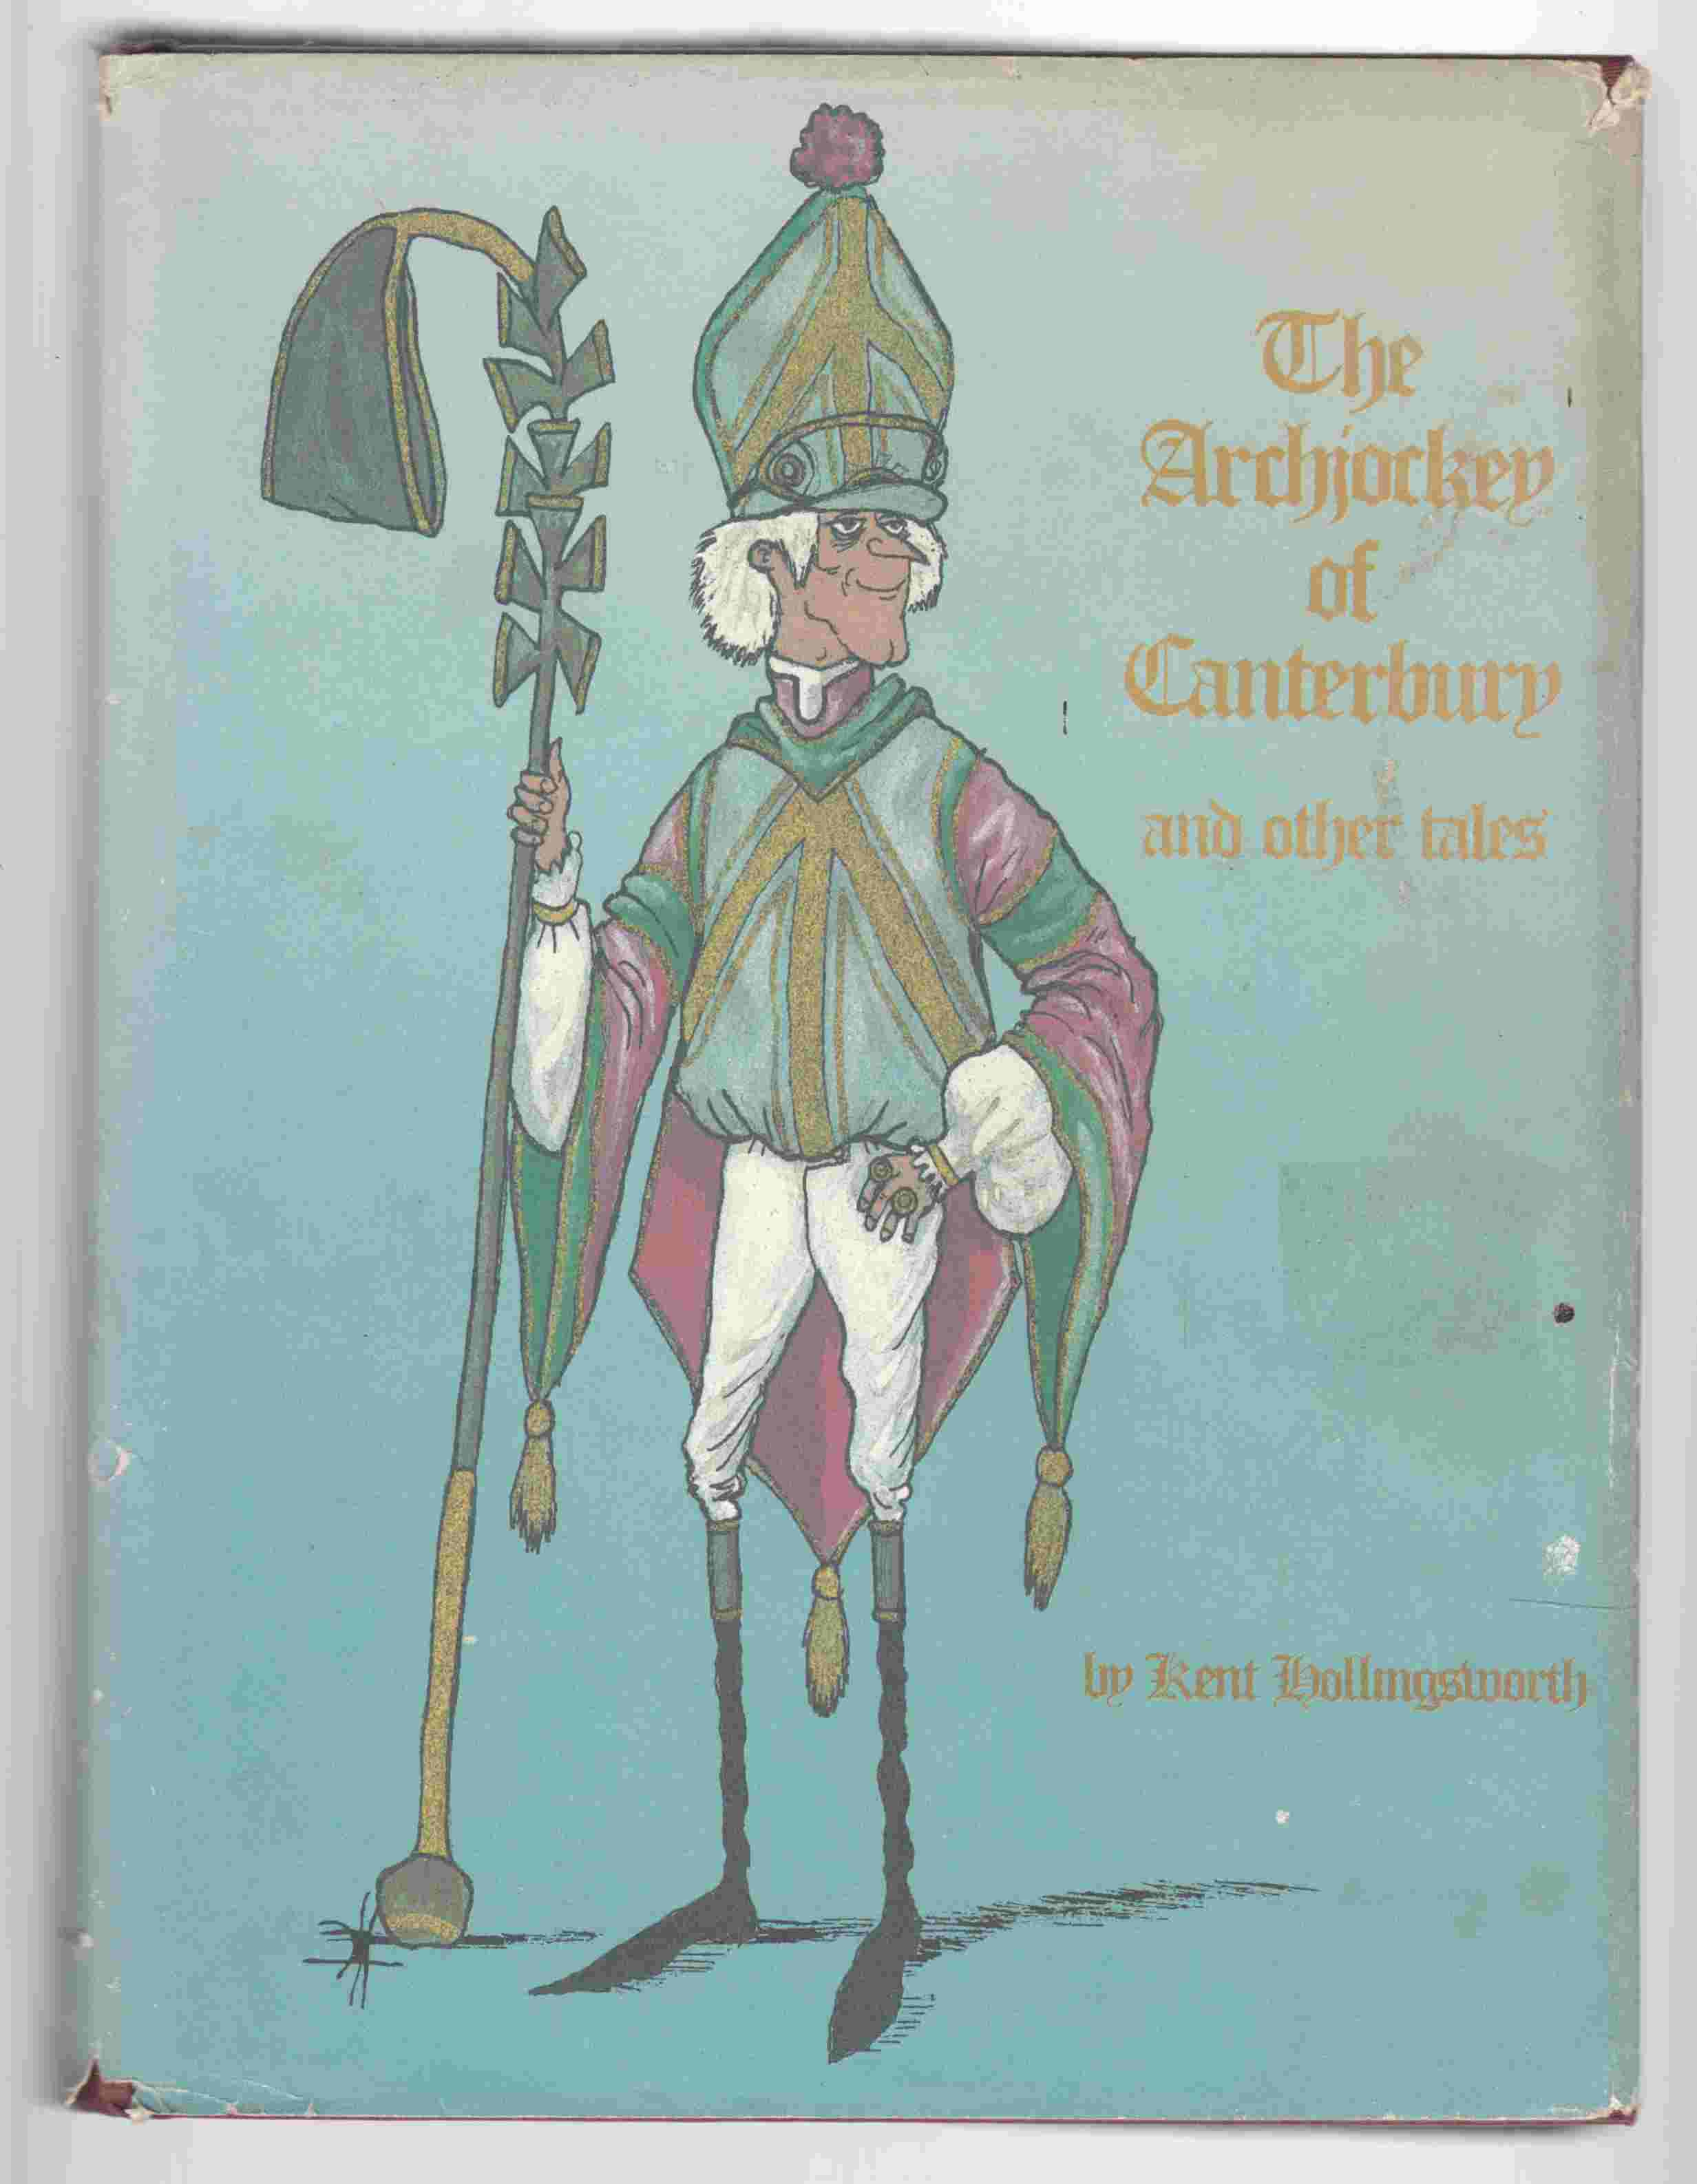 Image for The Archjockey of Canterbury and Other Tales